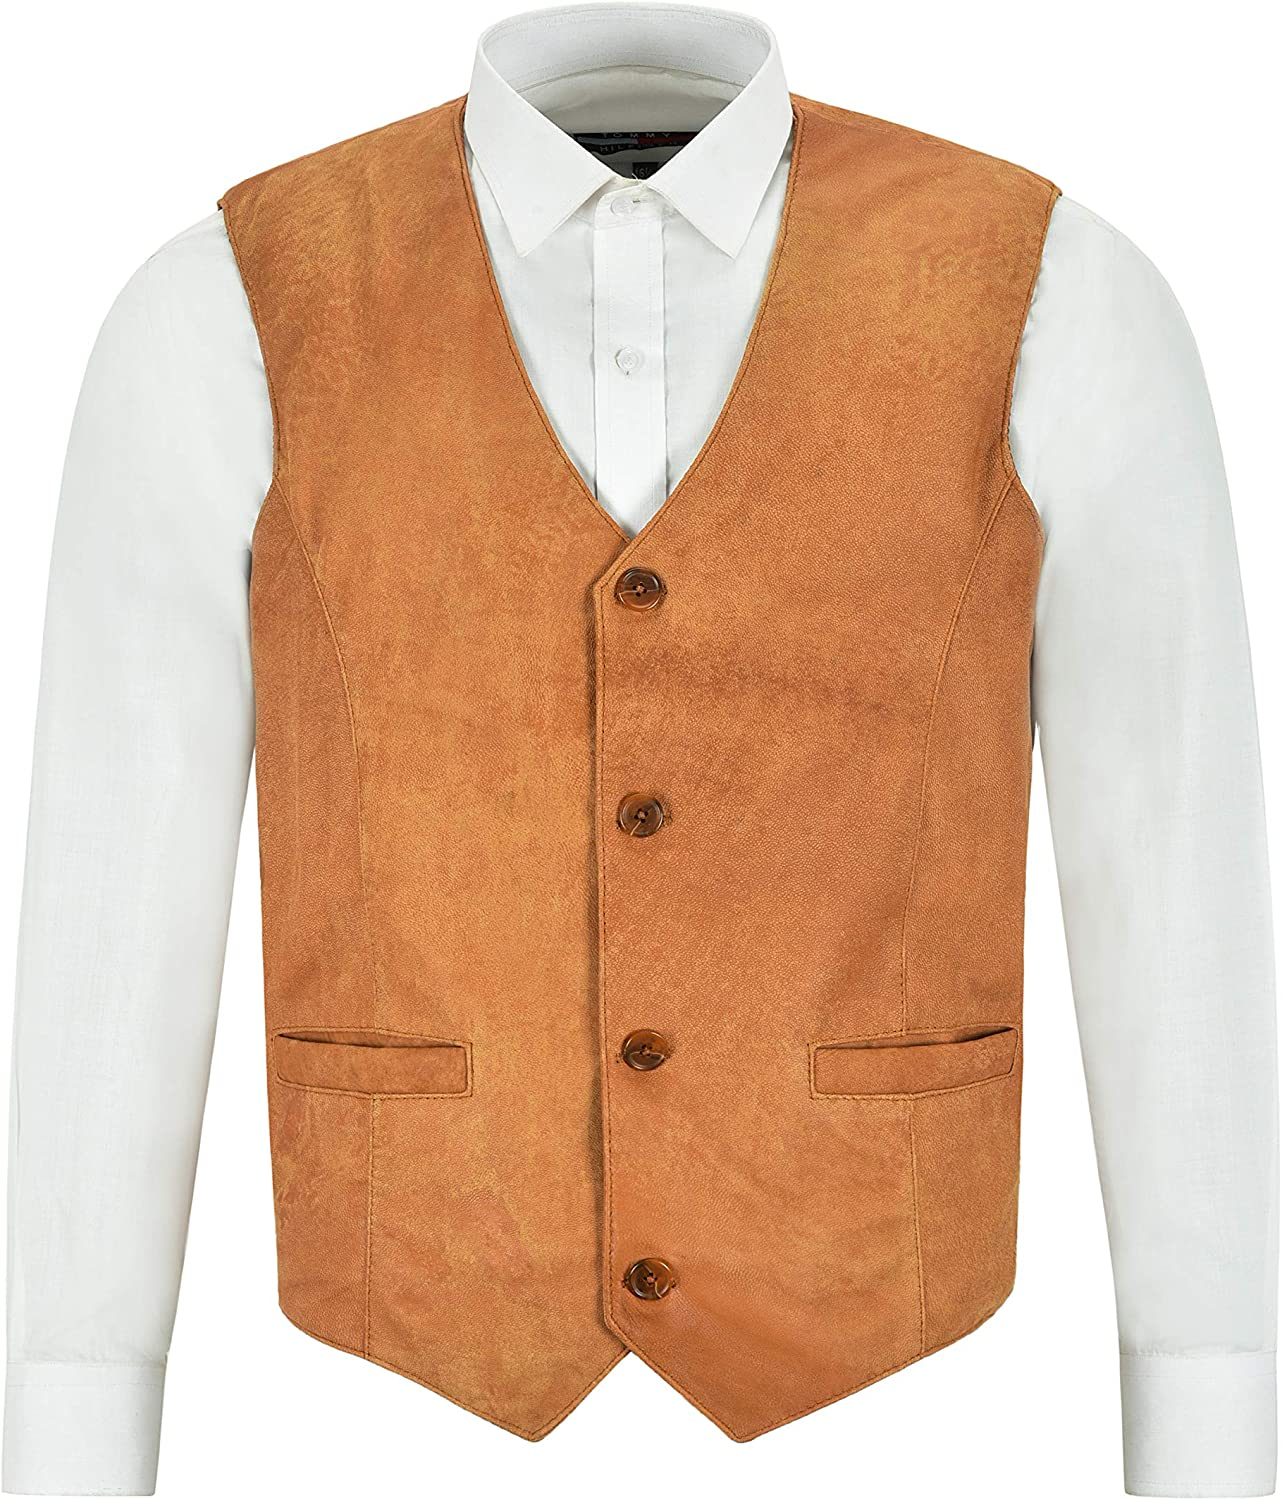 Men's Leather Waistcoat Tan Buff Party Fashion Stylish Real Leather Vest 5226